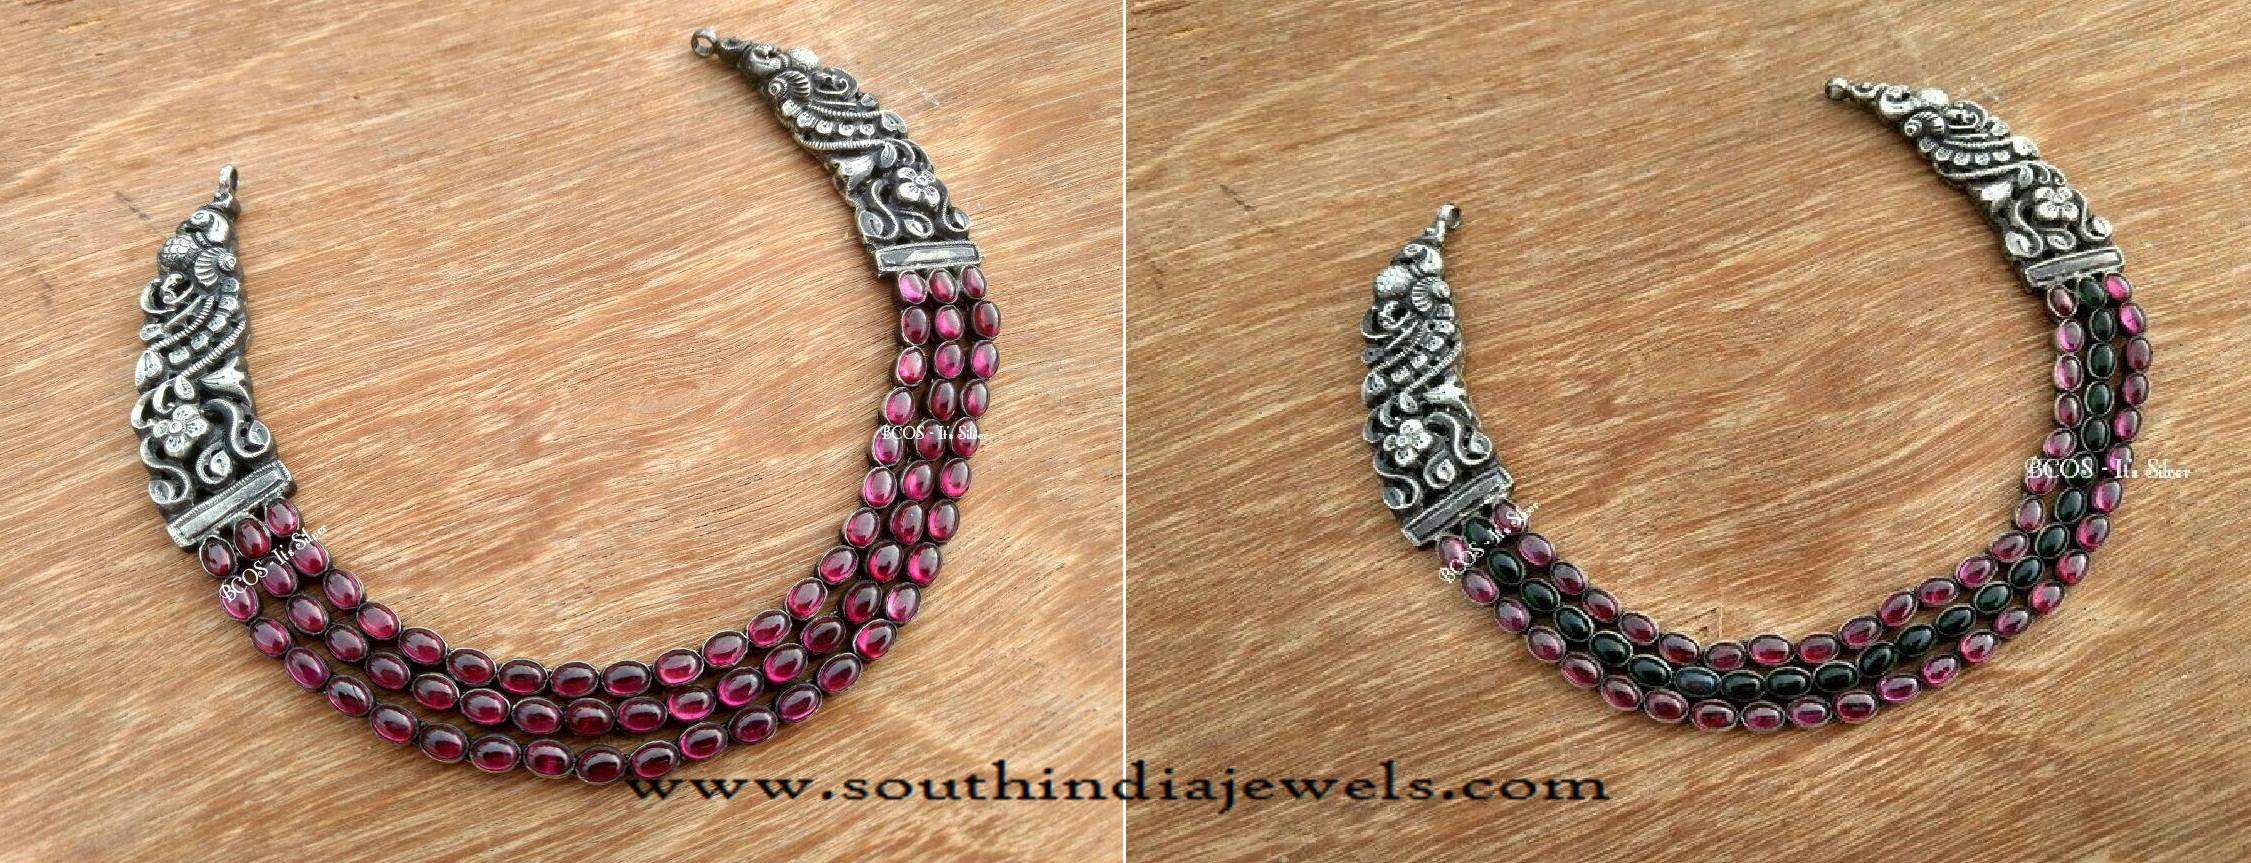 cotton pinterest at trinkets tribal online necklace sshamika jewelry on buy choker silver antique glass jewellery multicolor best jaypore thread images inspired